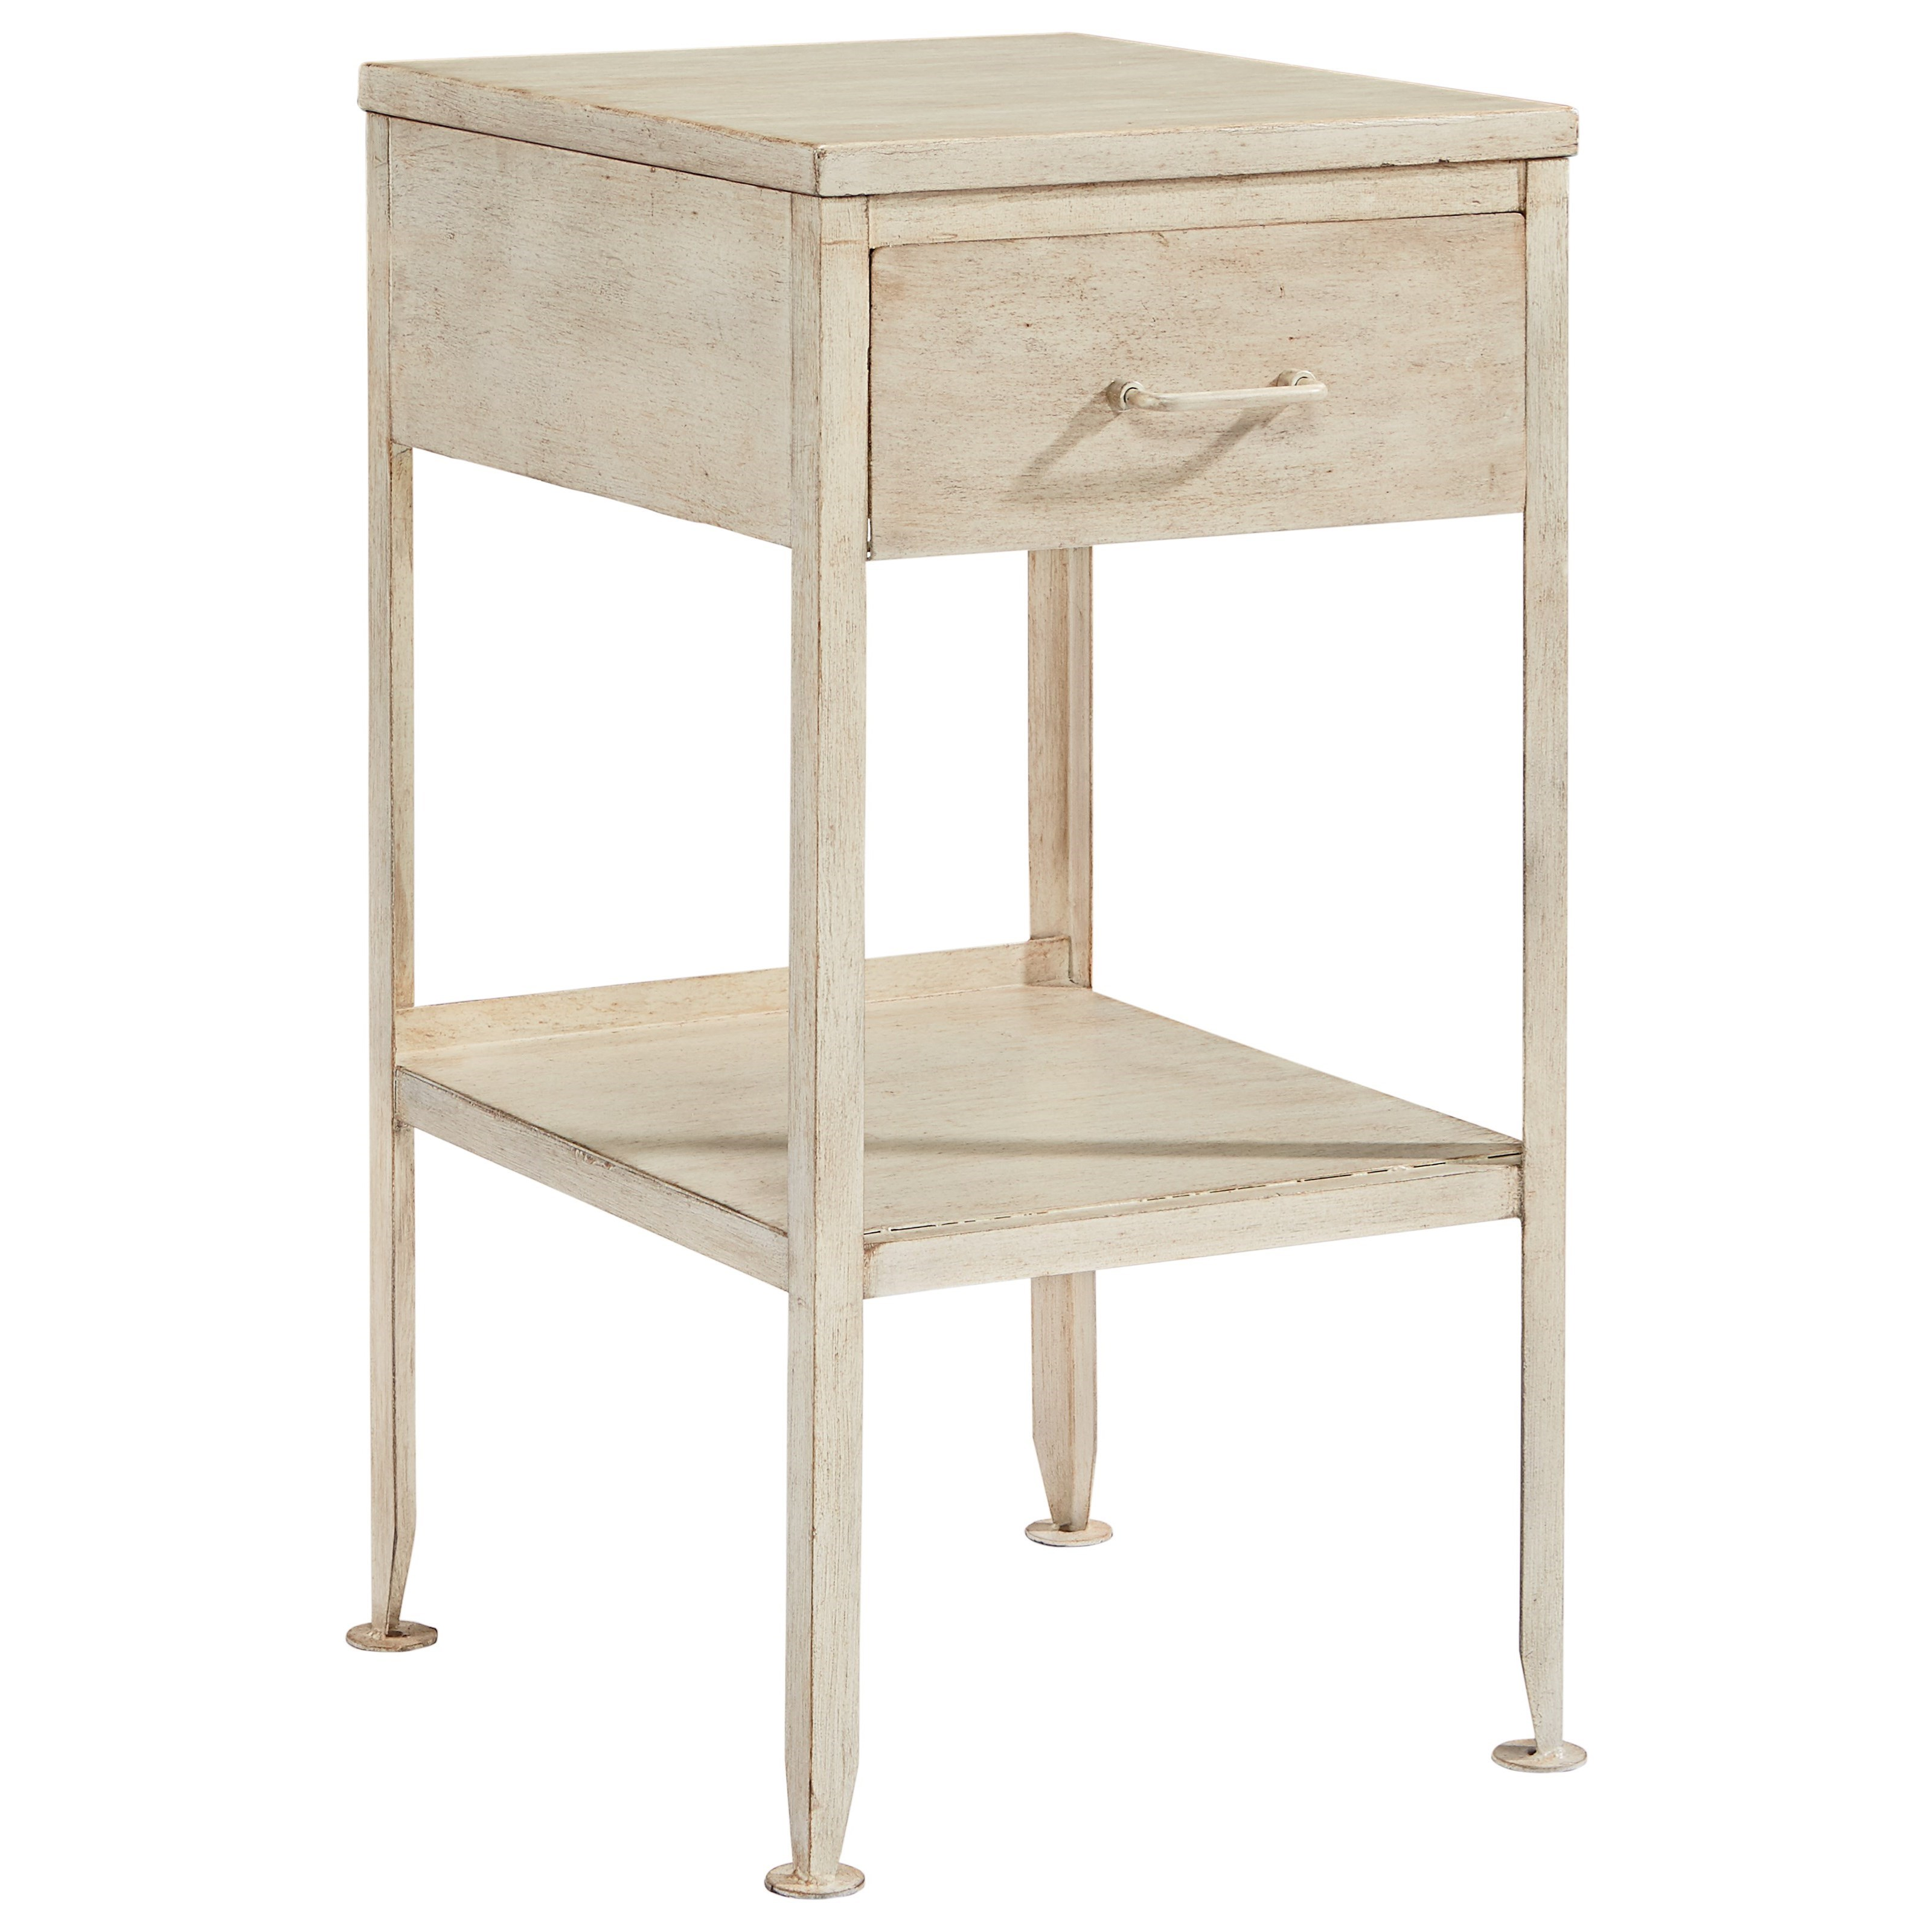 magnolia home joanna gaines accent elements small metal end table products color tables side headboard with shelves plastic square patio set cover clearance living room sets